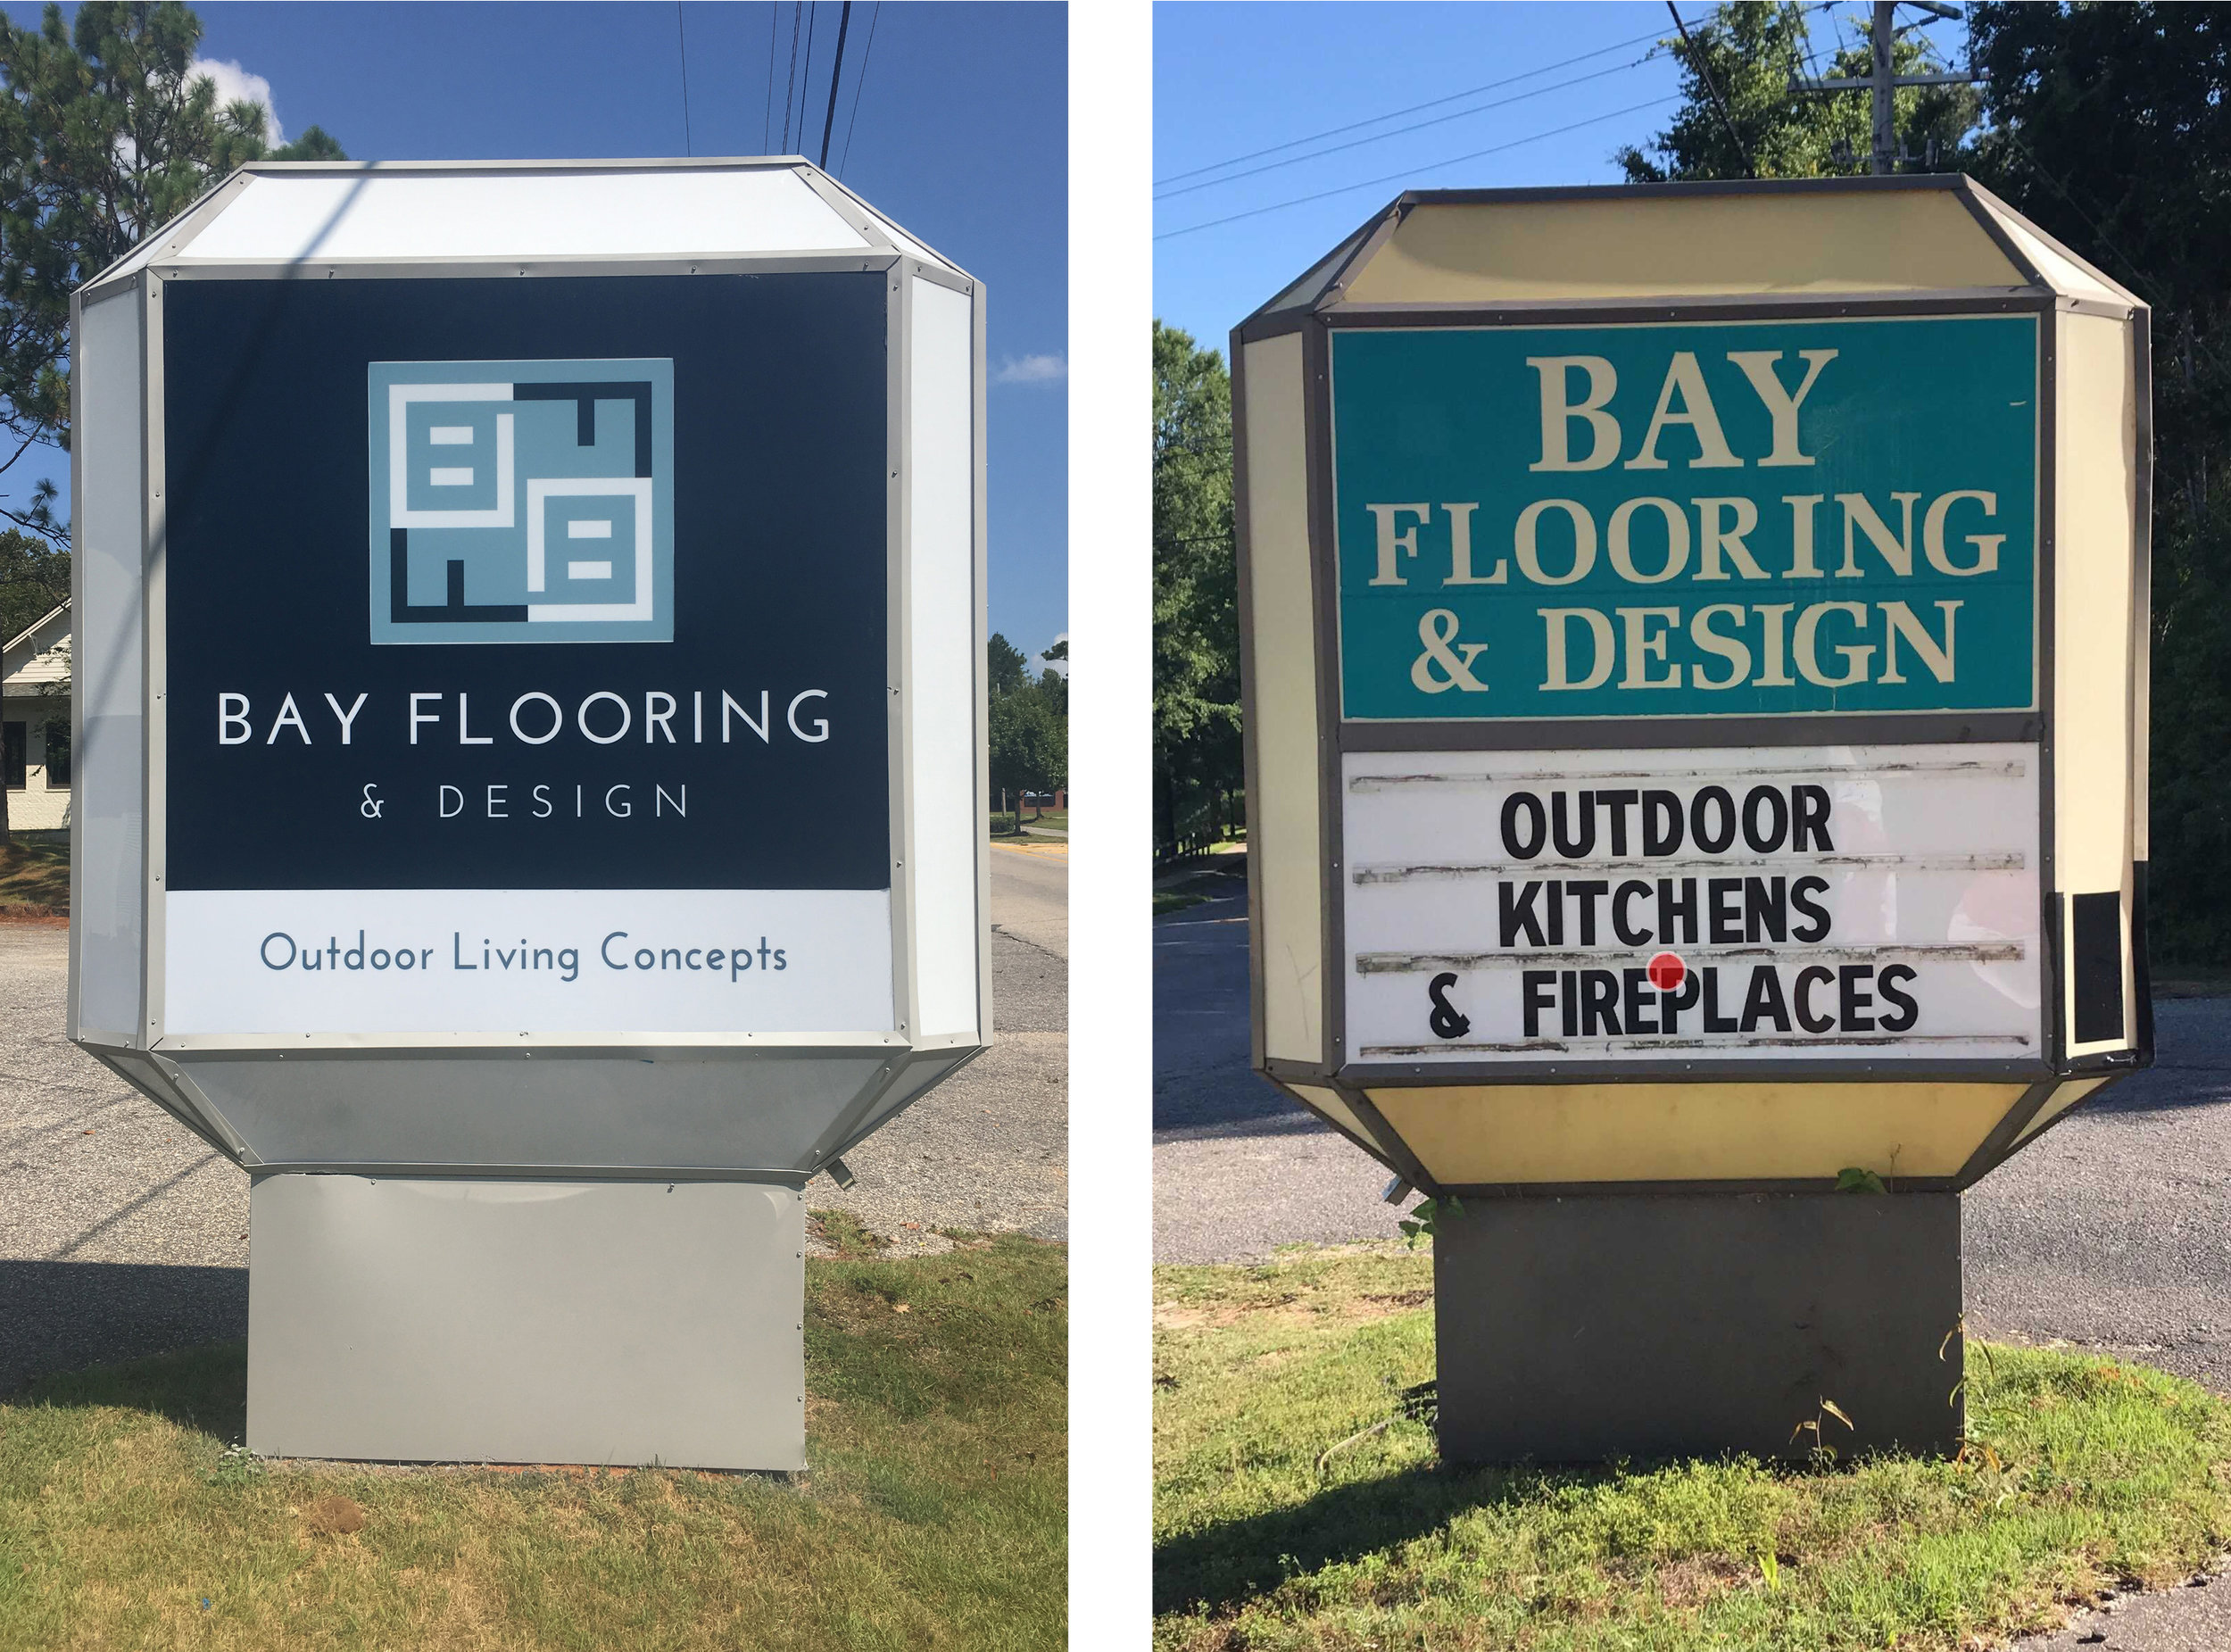 Talk about a sign transformation for Bay Flooring & Design on North Section Street in Fairhope! When it comes to my design work, there's nothing more fulfilling than creating and transforming a brand to represent the true identity and personality of a client. Very honored to help Bay Flooring do just that.  I was thrilled when I received an email from them last spring, mainly because I enjoy driving by pretty signage too, and this eyesore had stood out to me for YEARS.Their sign was grandfathered in decades ago. Rarely do you see a sign this large and close to the street,on such a busy street in downtown Fairhope.